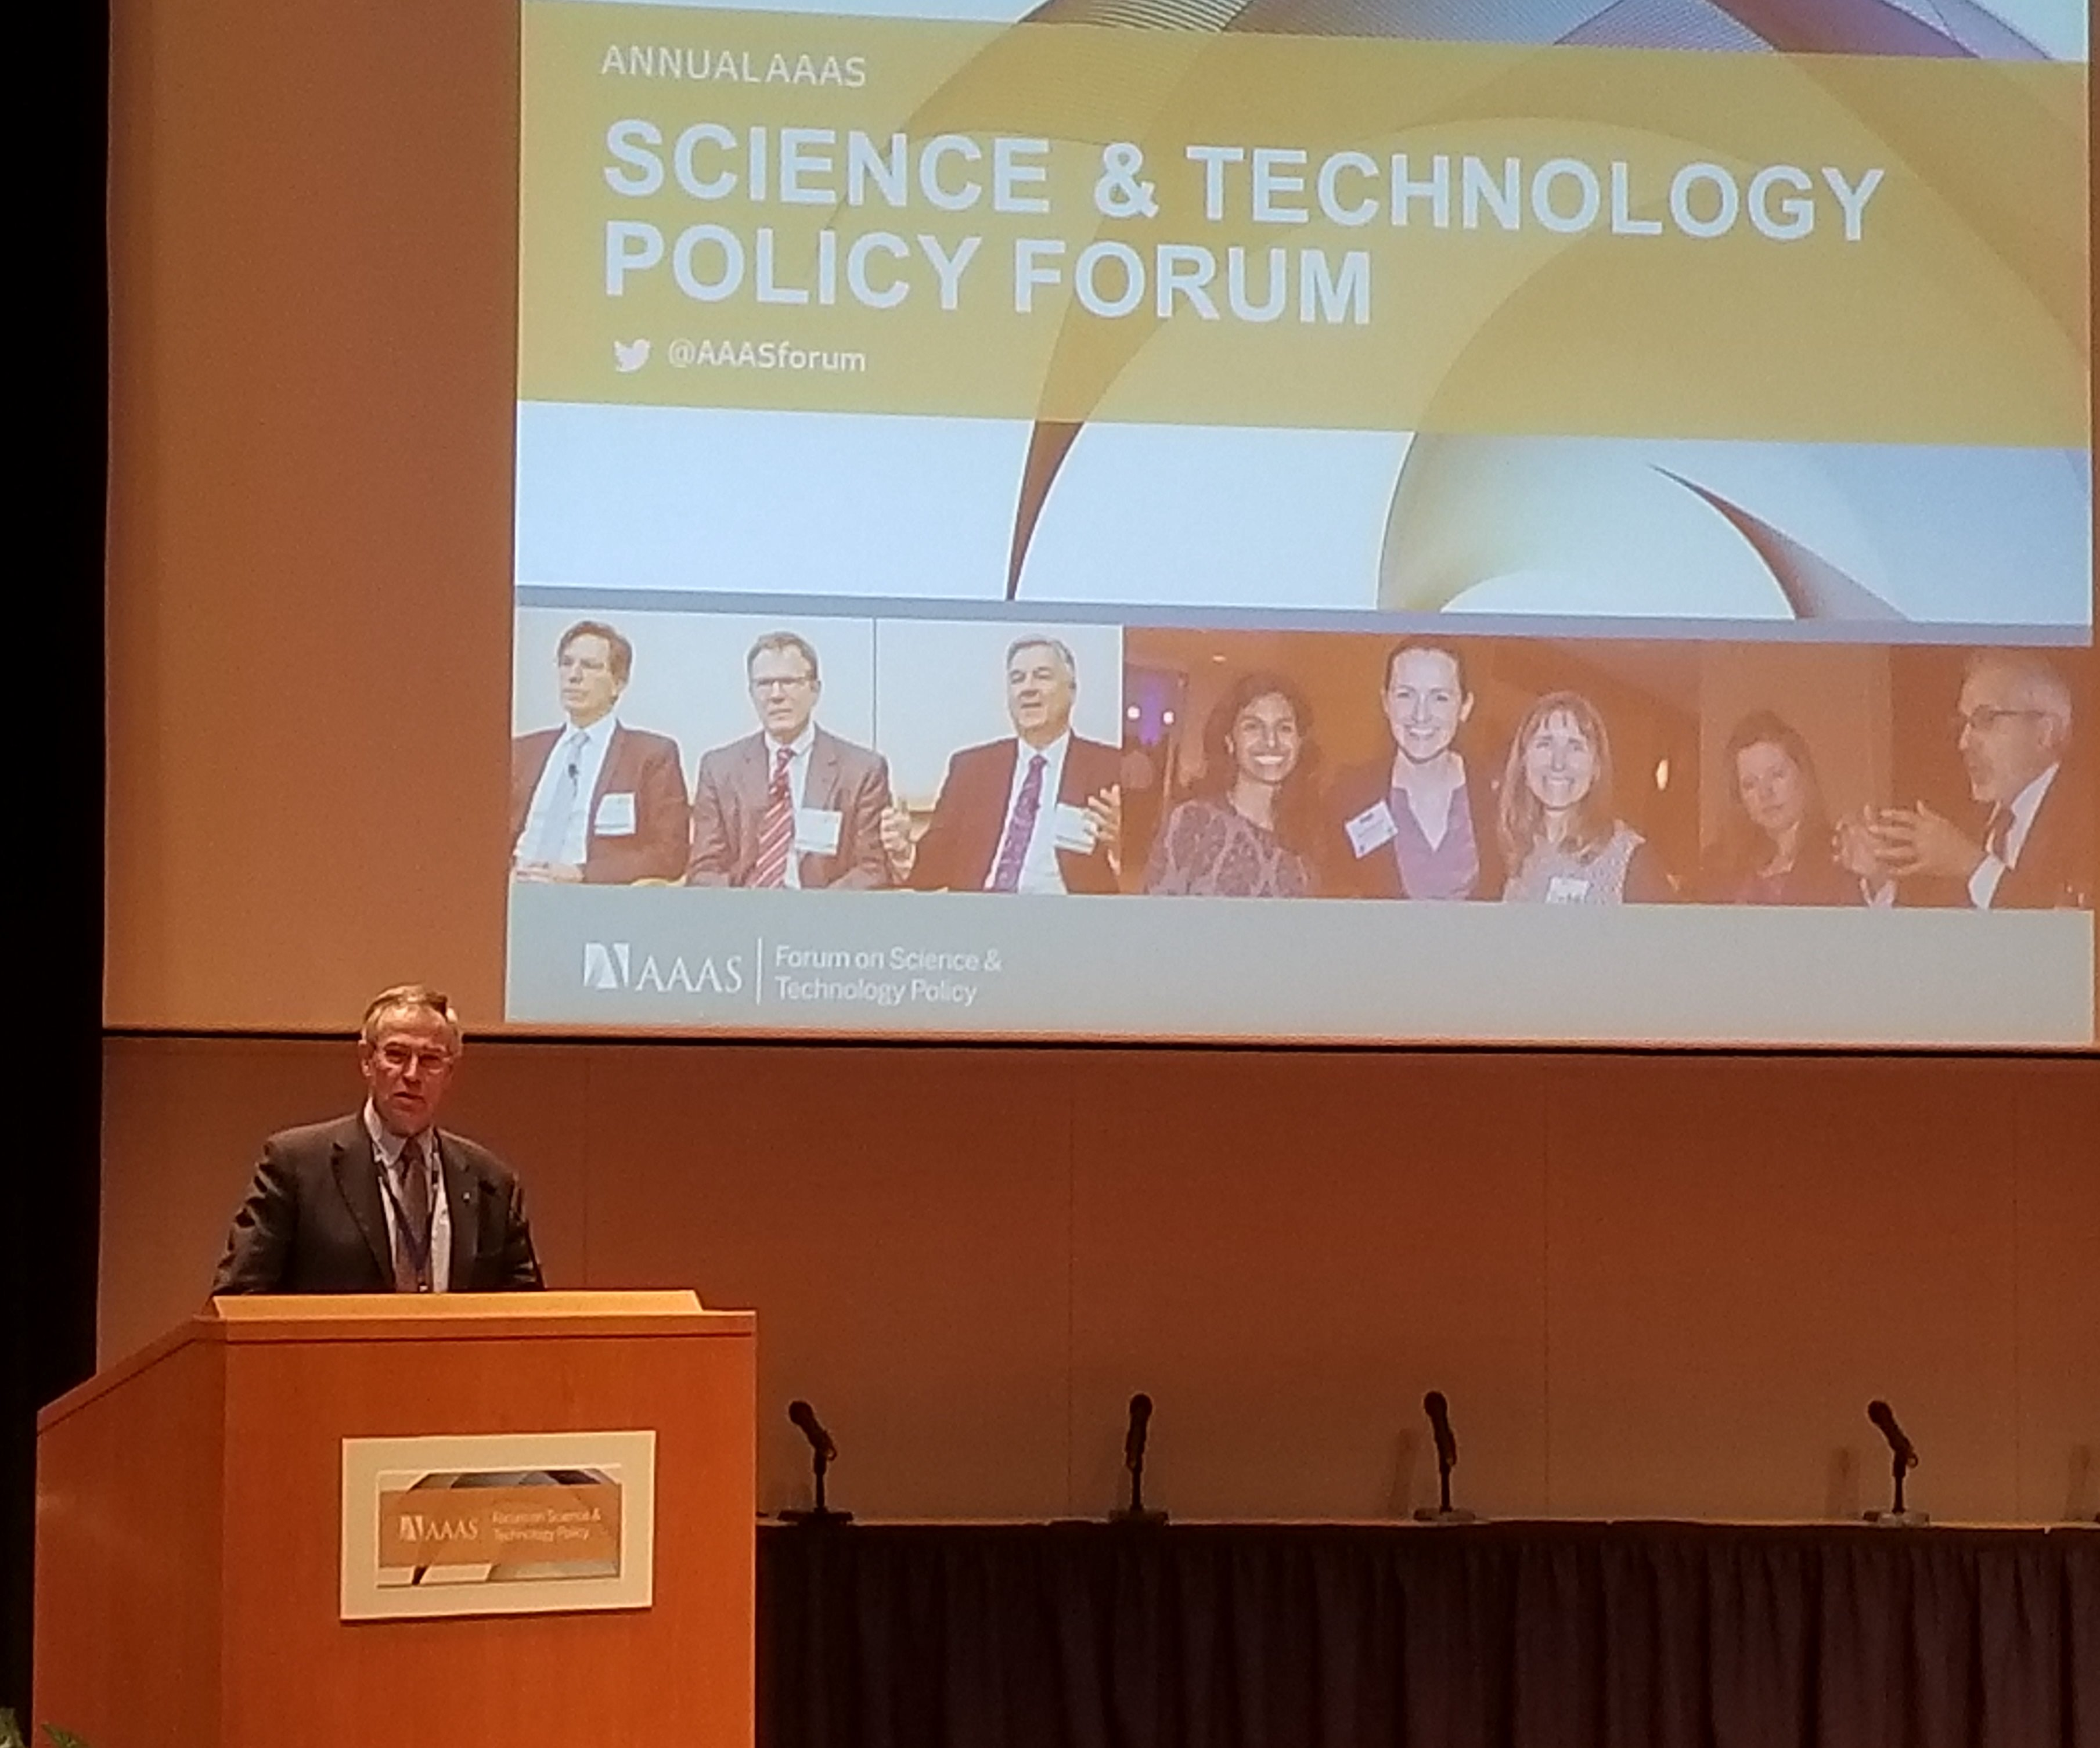 Rush Holt, CEO, AAAS Opens the 43rd Policy Forum